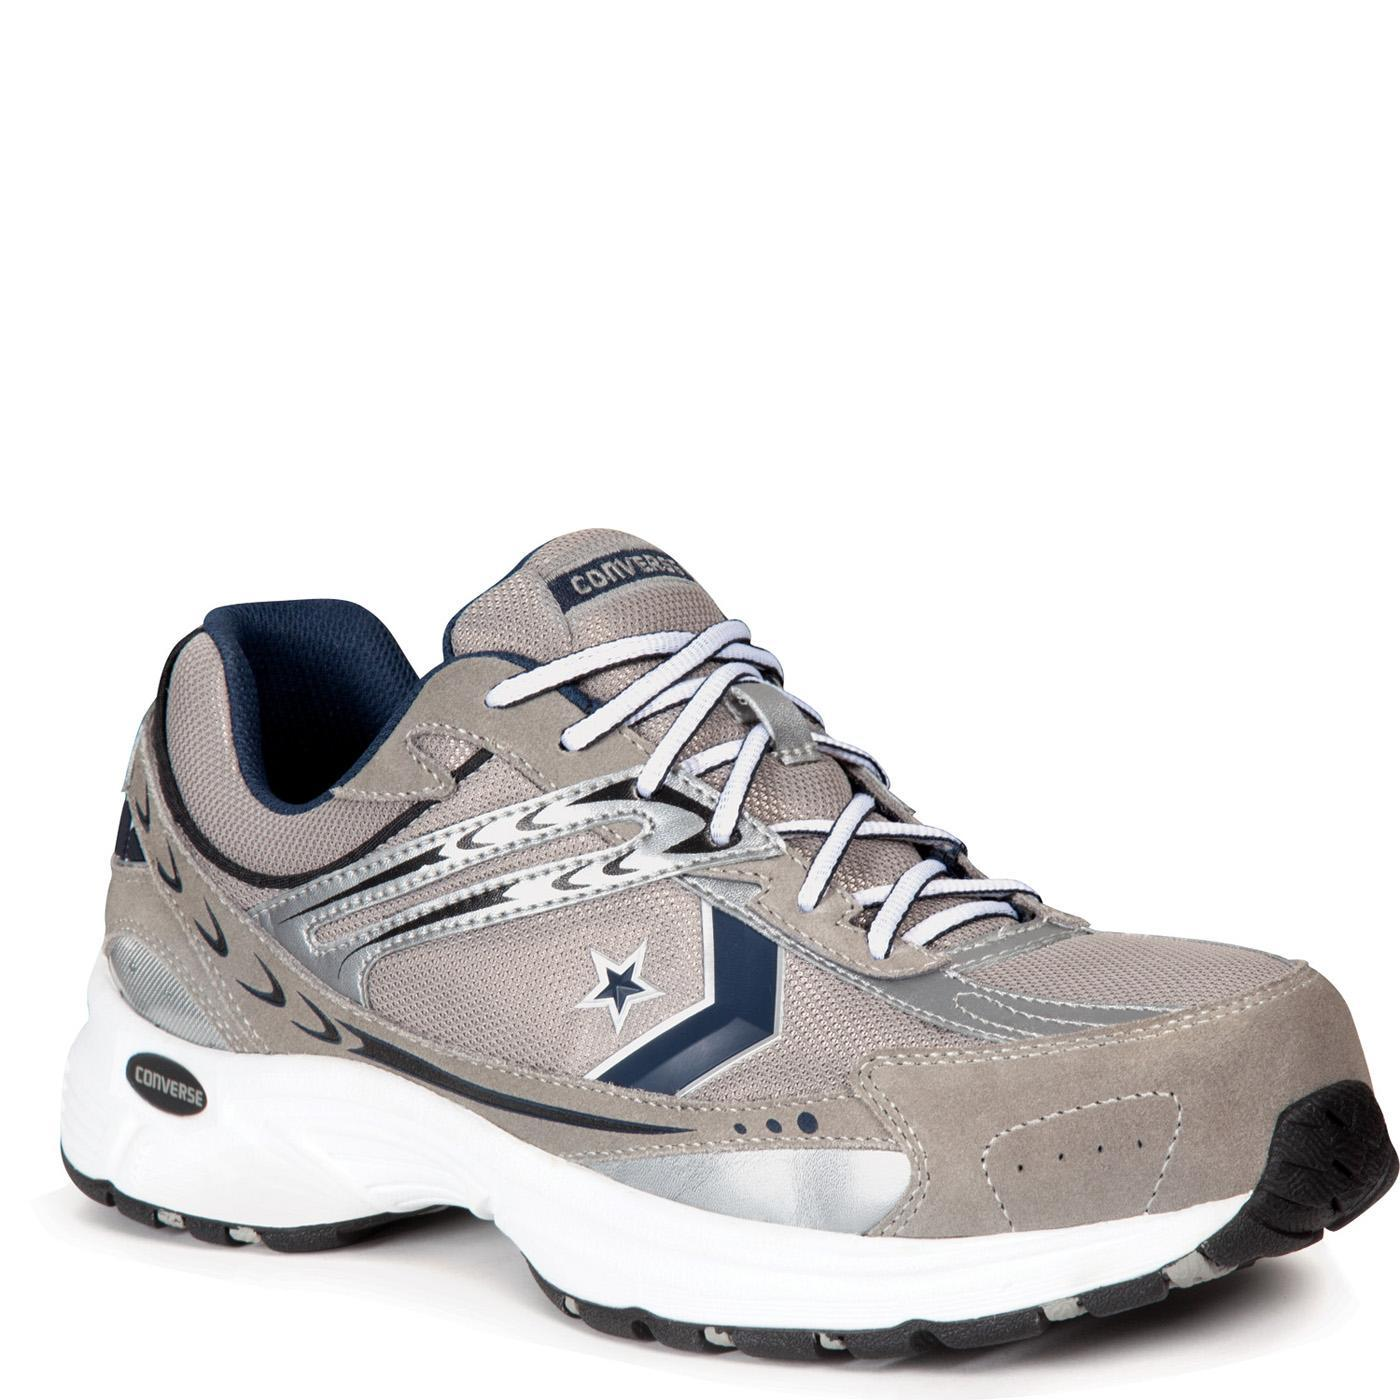 1ec89006adc2 Converse Composite Toe LoCut Athletic Work ShoeConverse Composite Toe LoCut  Athletic Work Shoe